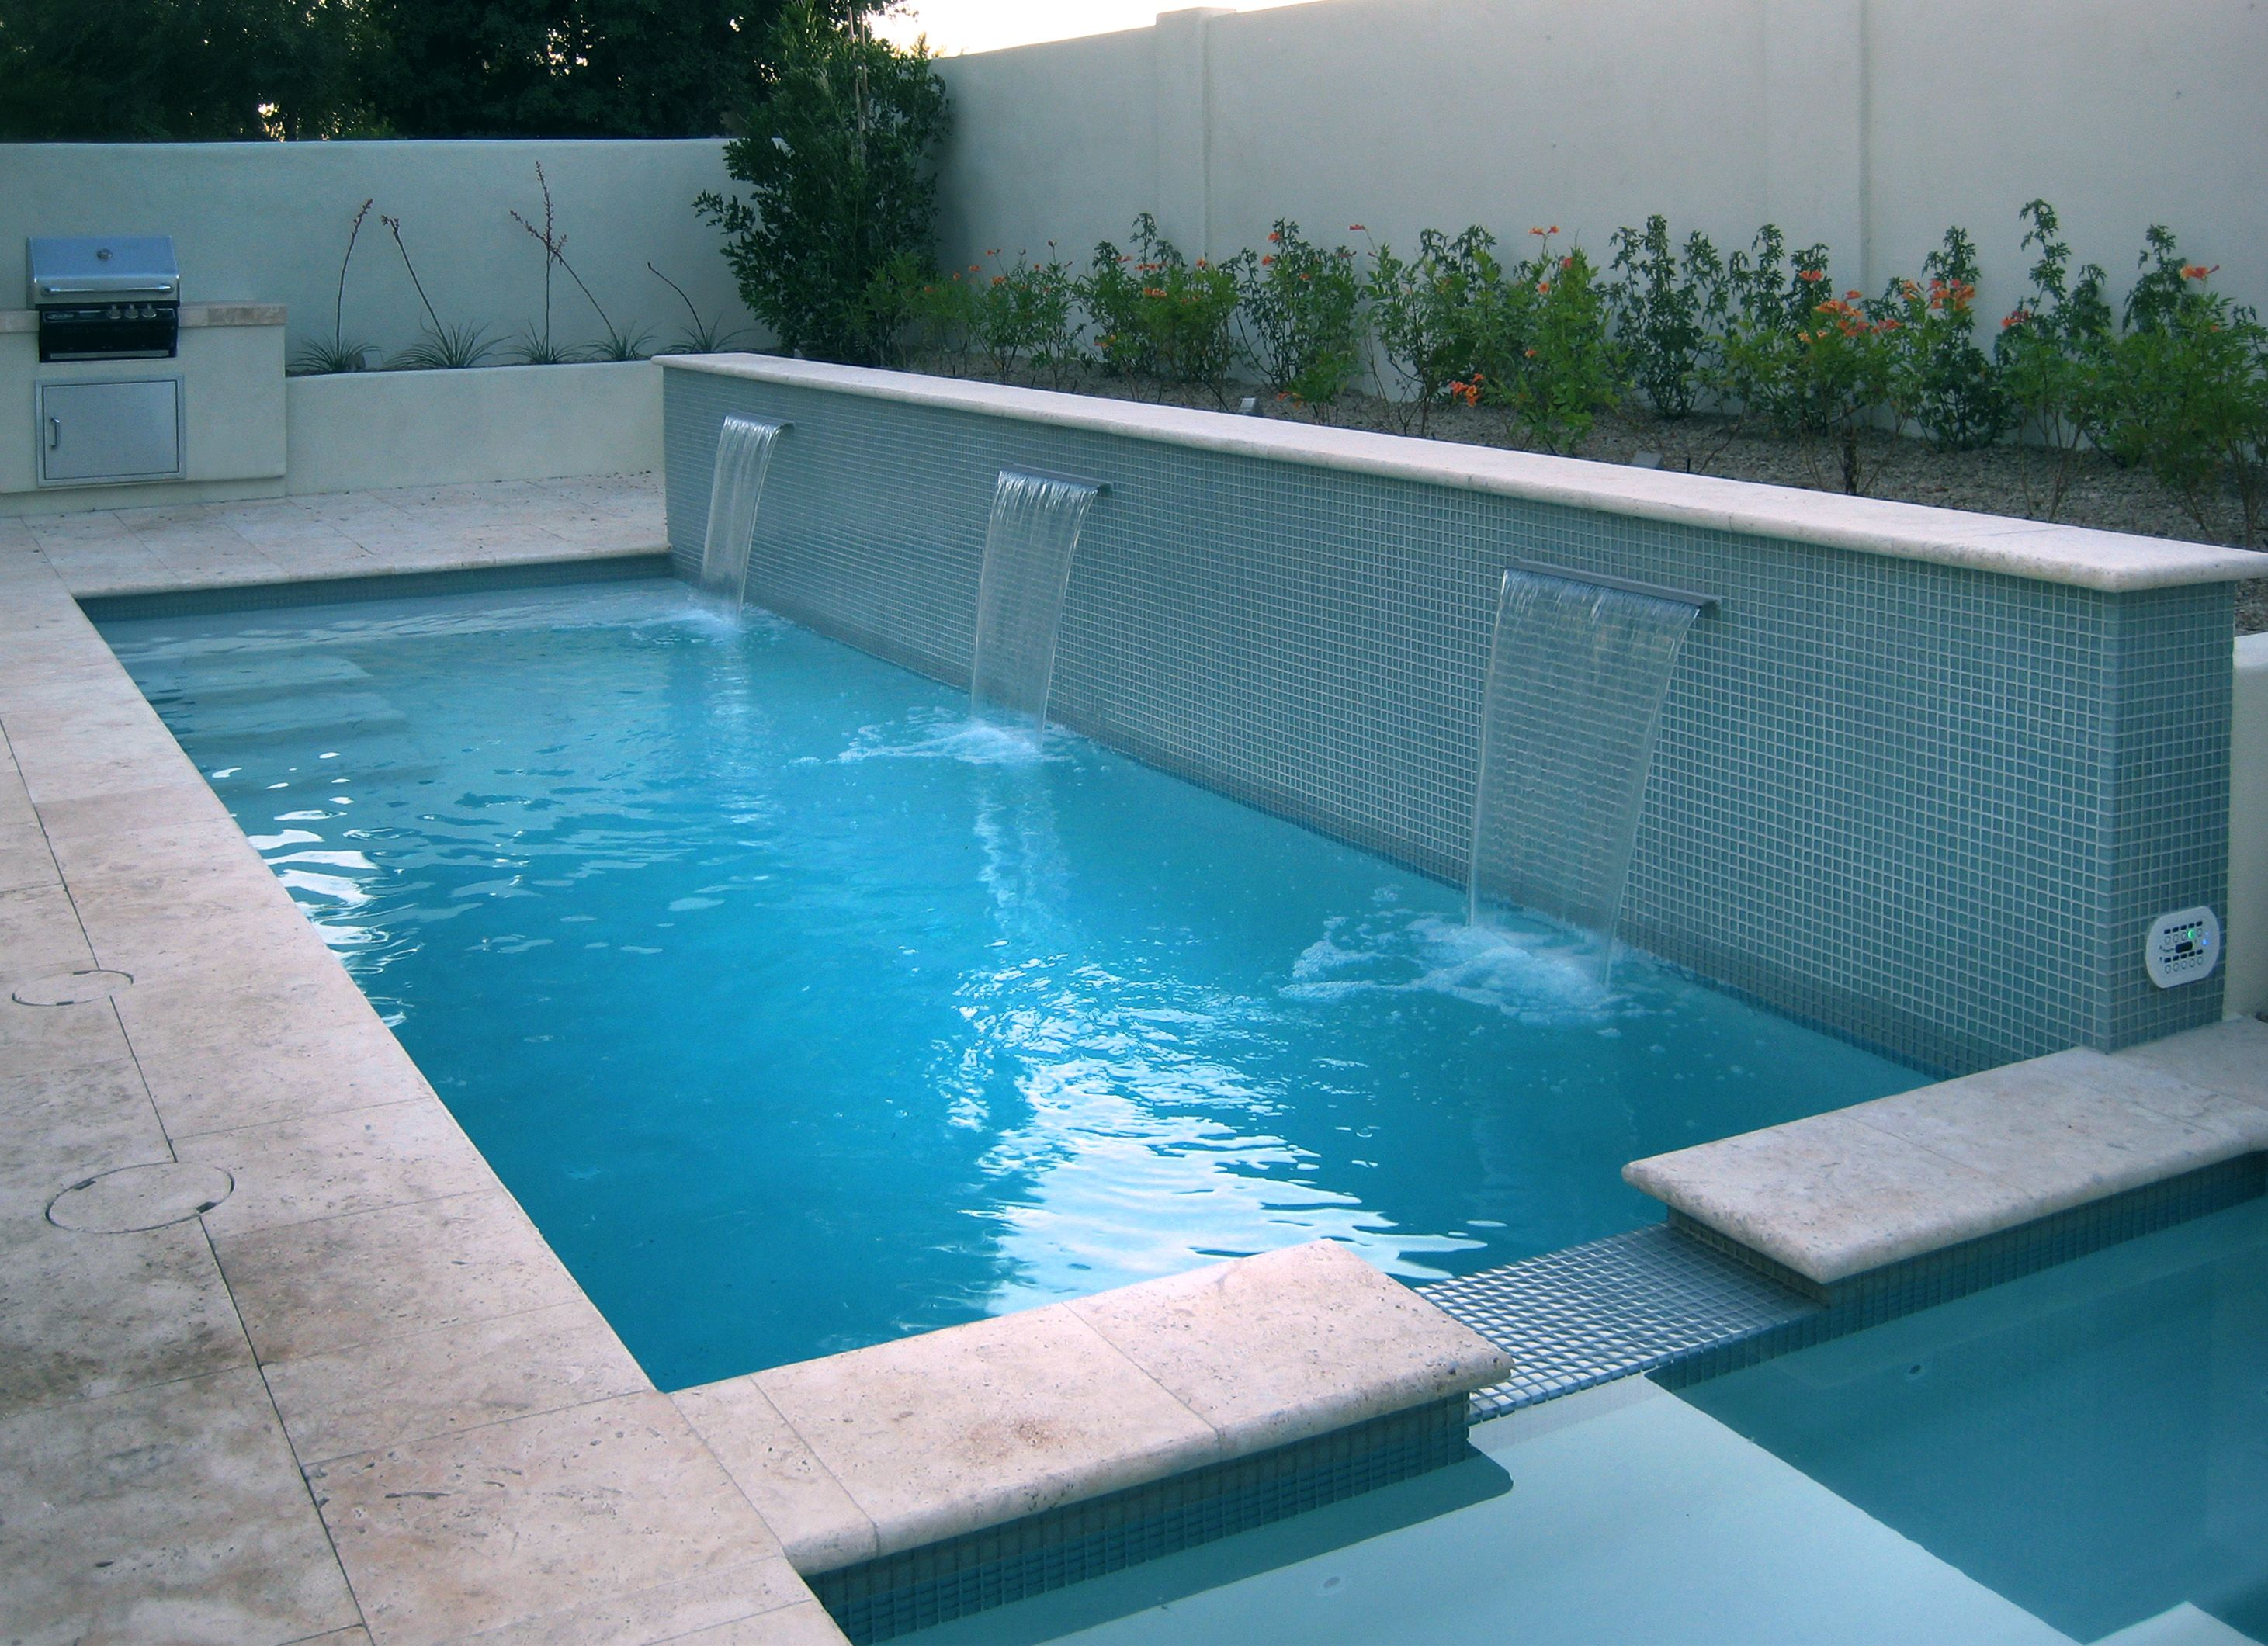 Water feature and swimming pool tile pool by natural reflections - Swimming pool tiles designs ...